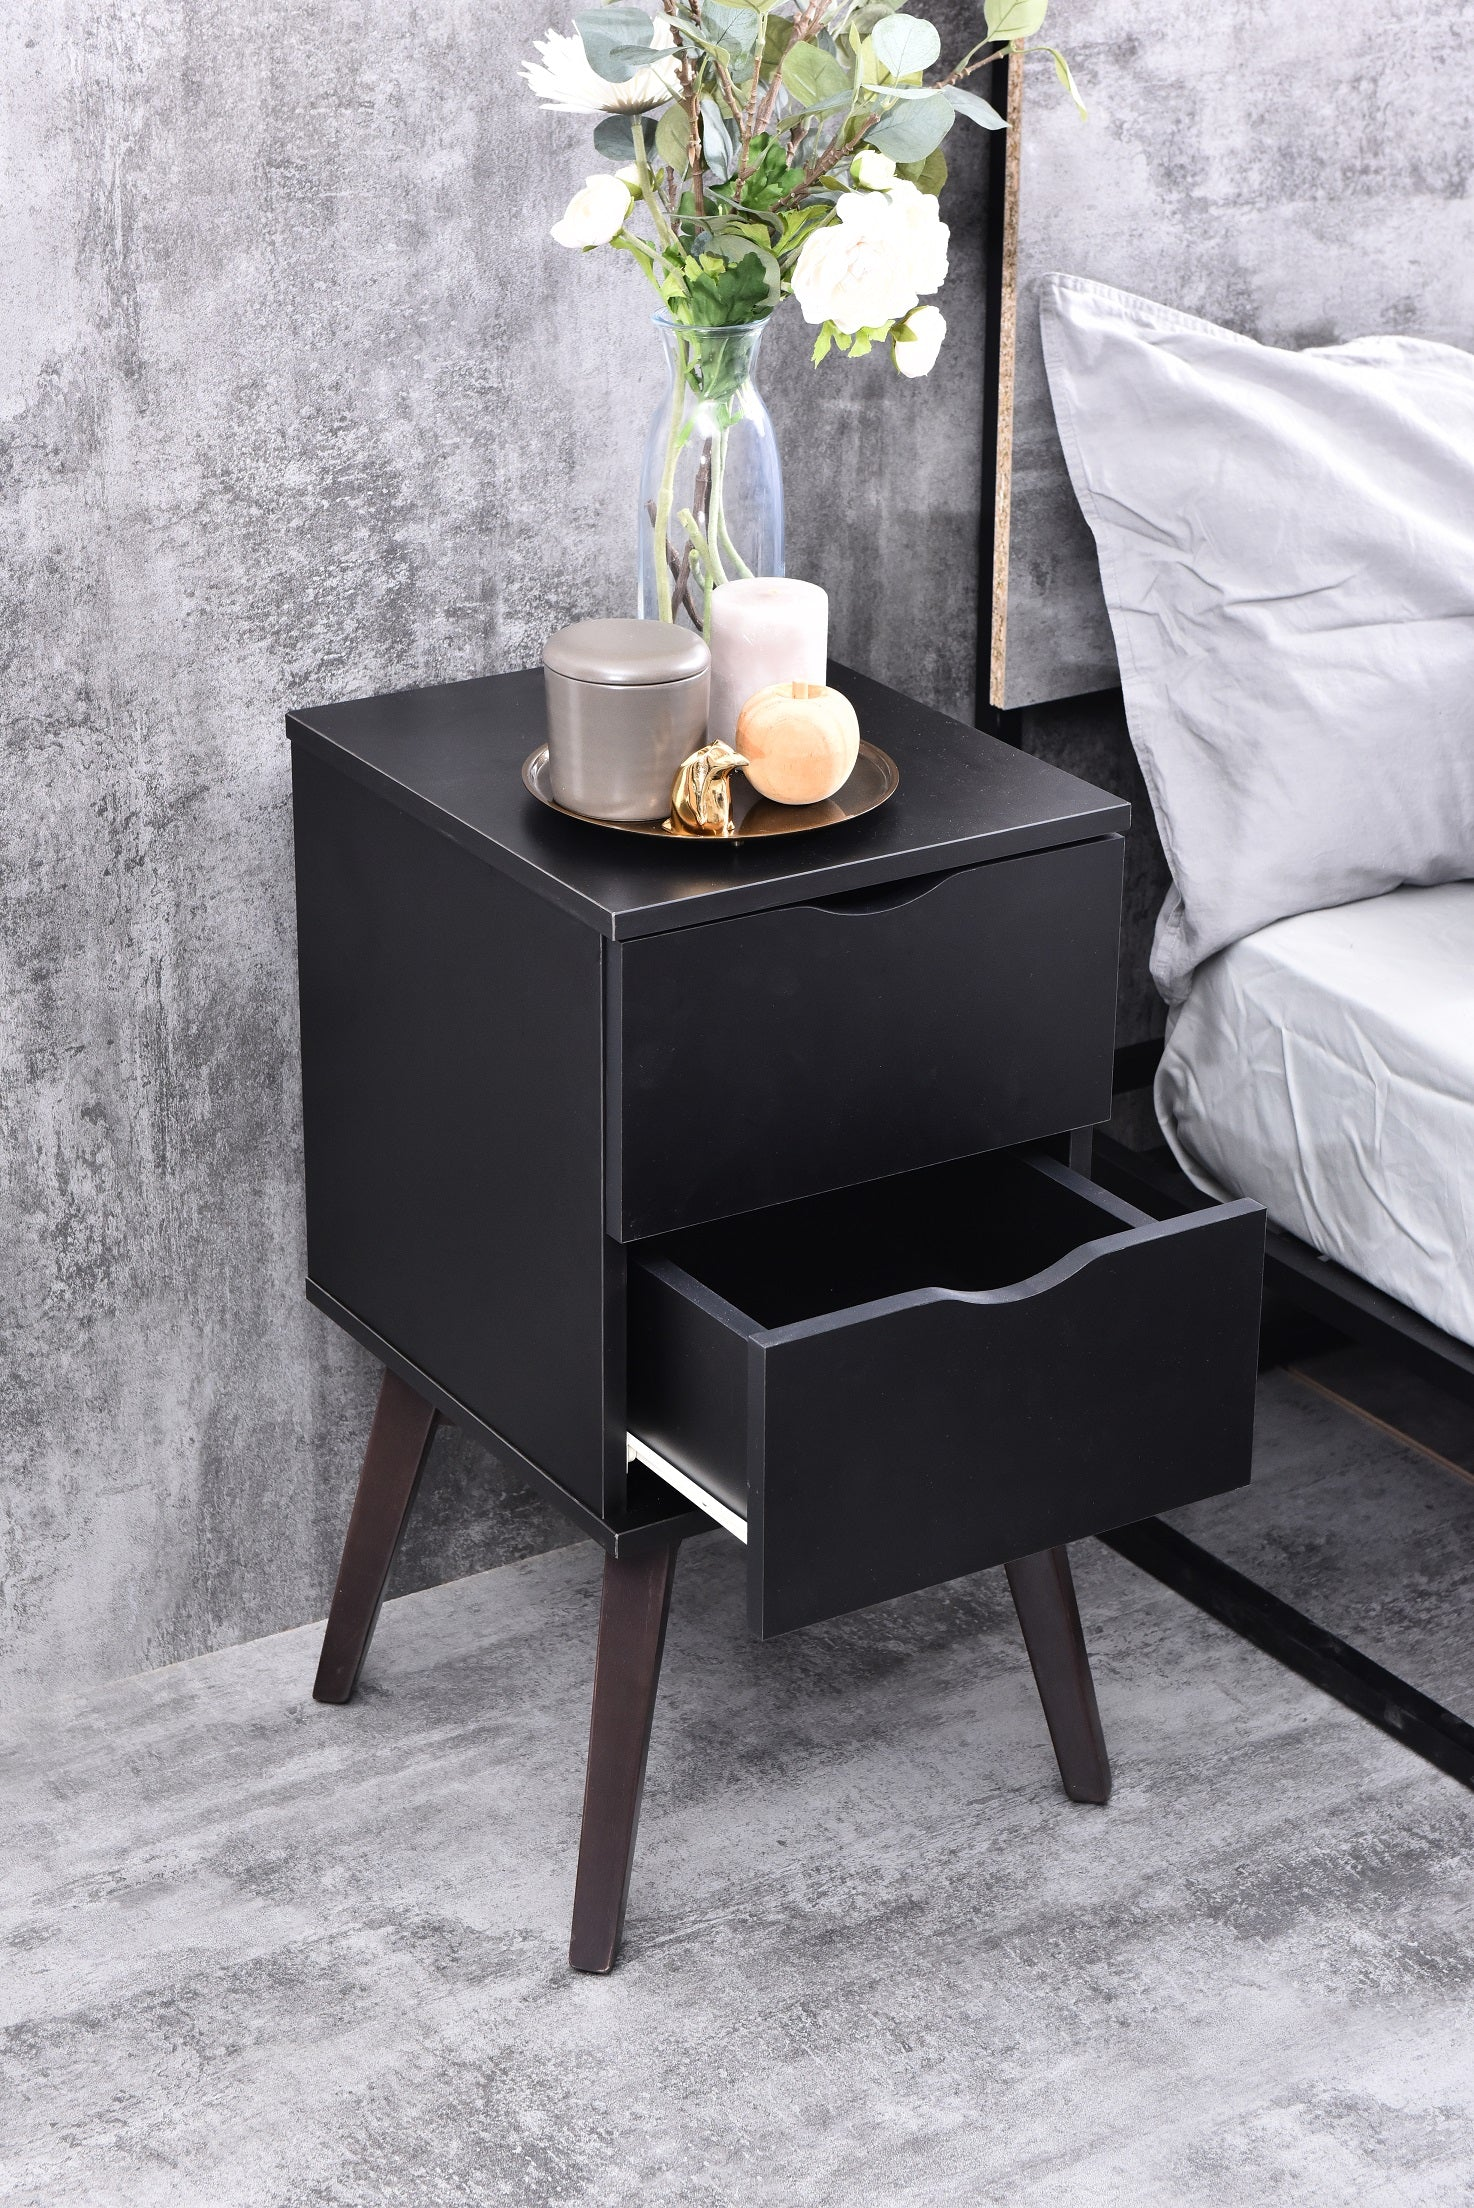 Hubie bedside table with drawers, black